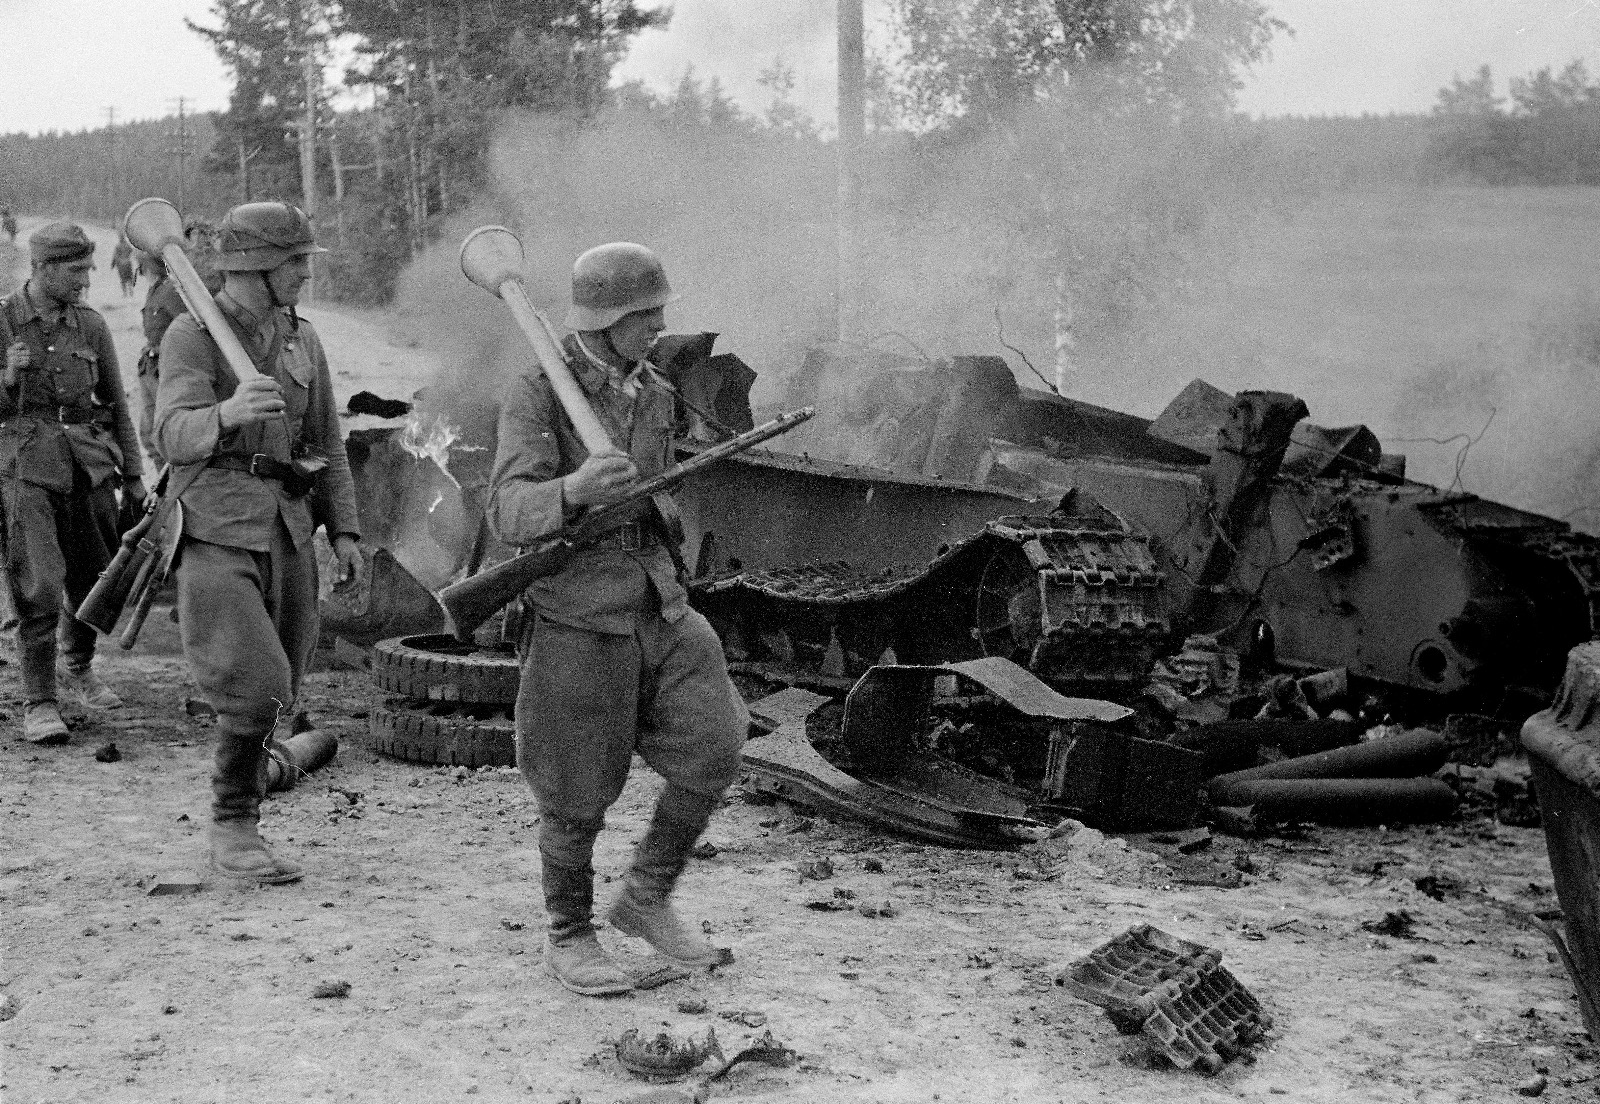 Meet the Weapons That Made Hitler's Nazi Germany A Force To Be Feared